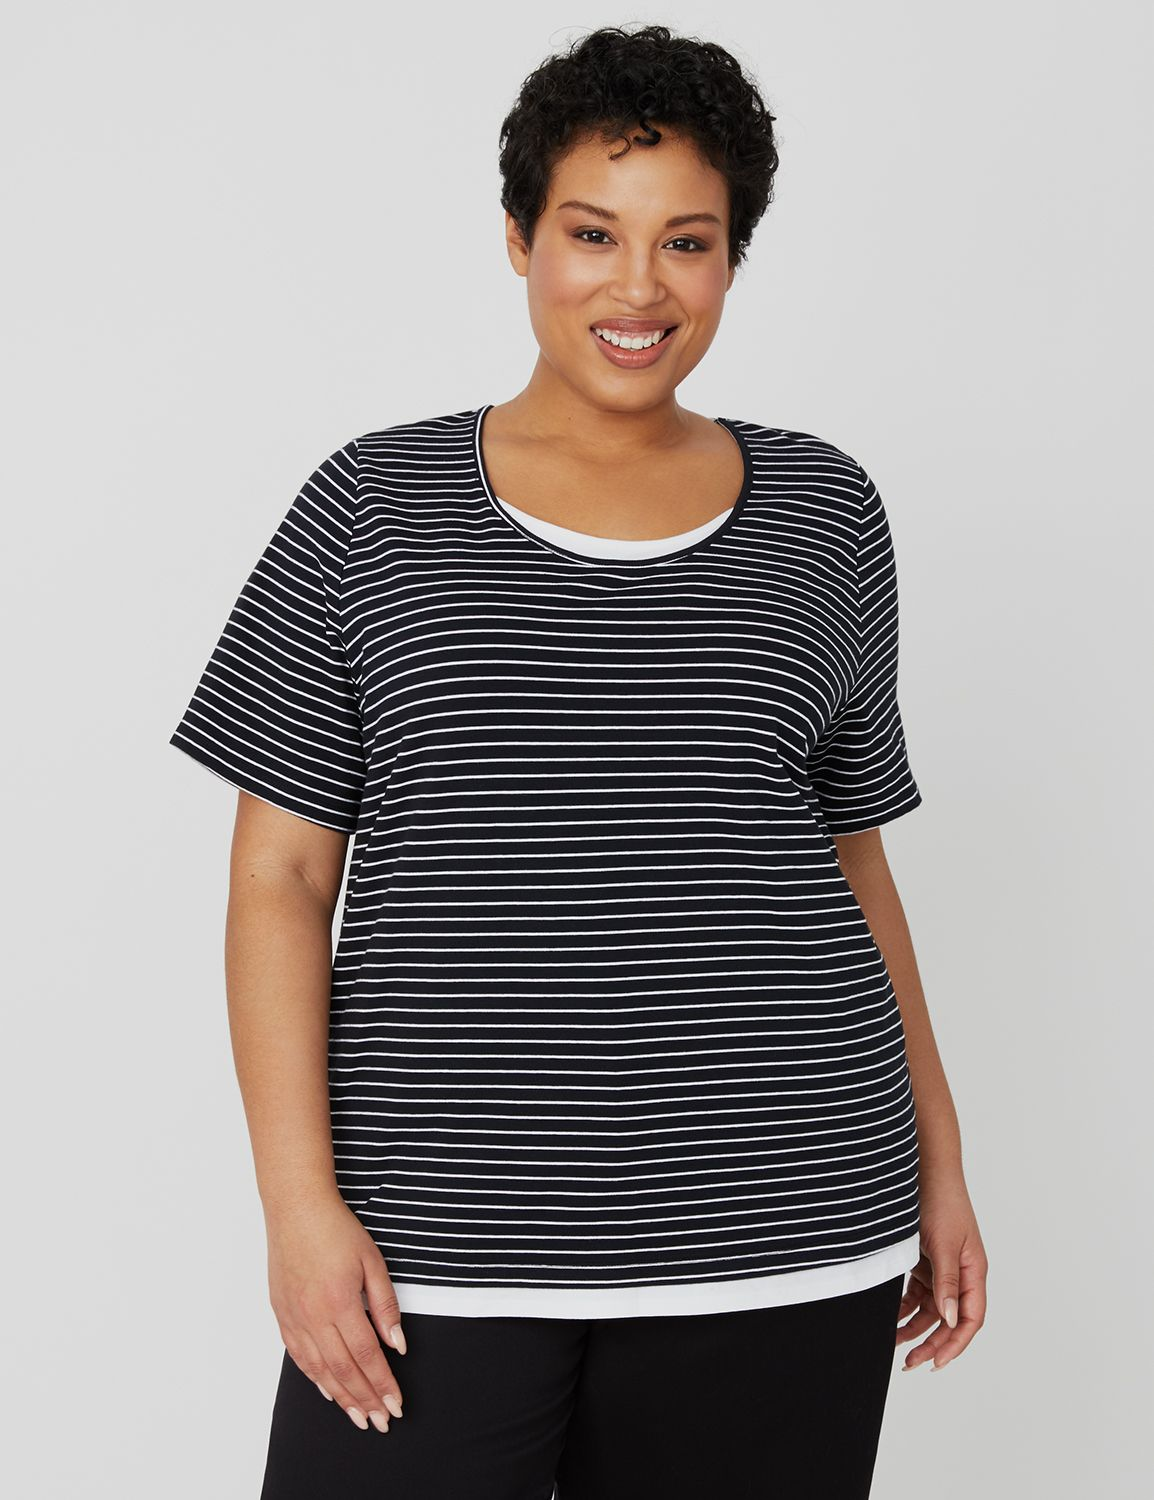 Suprema Duet Stripe Tee 1092768 SUPREMA SS- STRIPE 2FOR MP-300104400